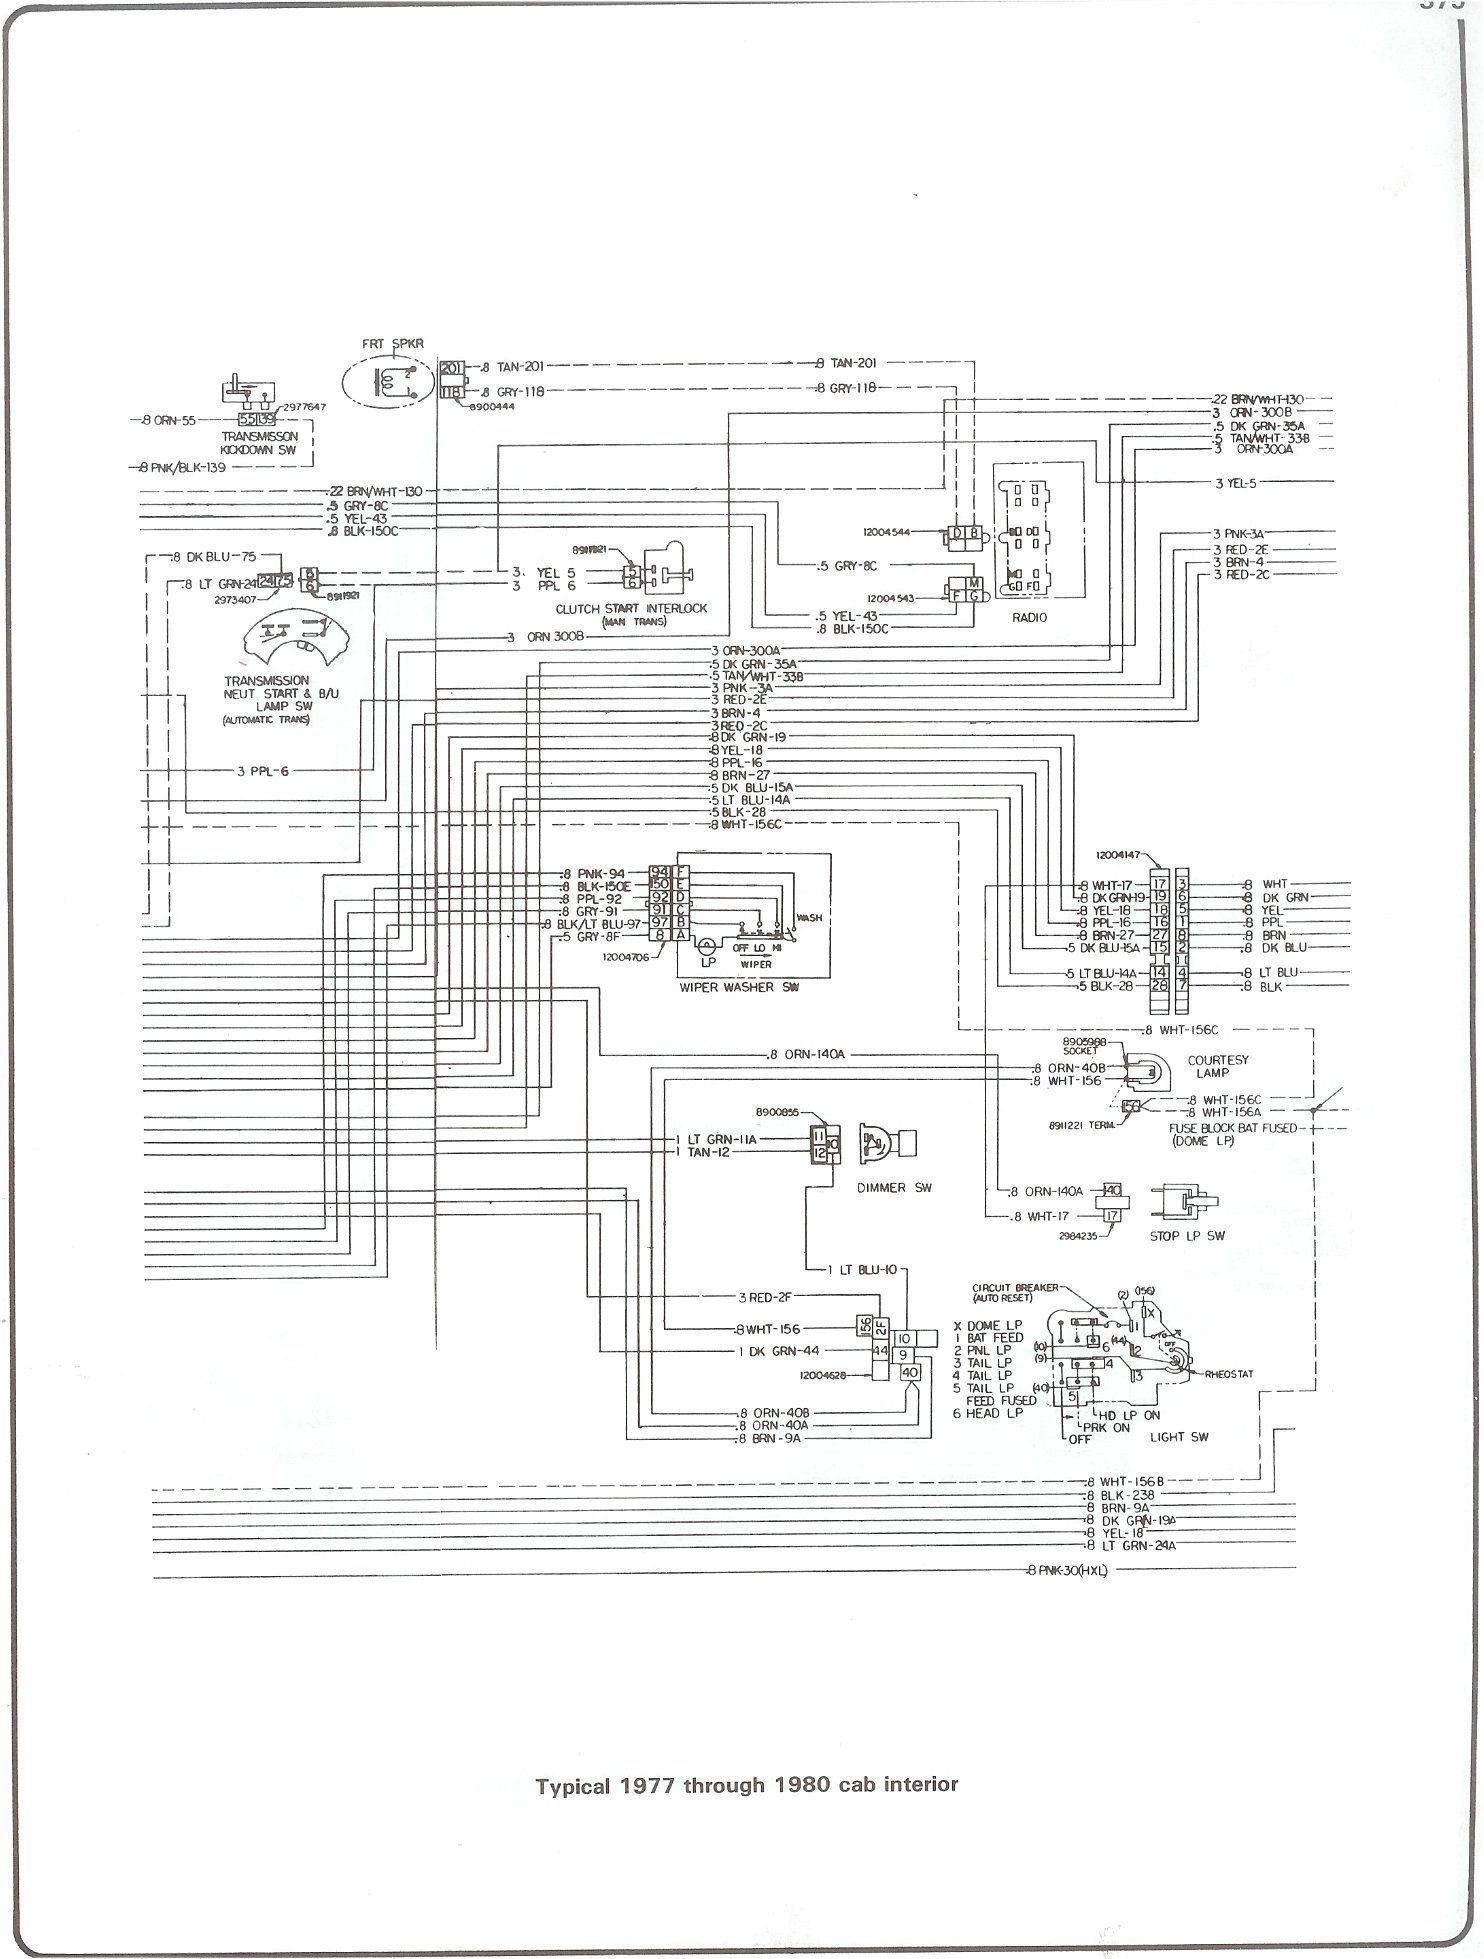 77 80_cab_inter chevy truck underhood wiring diagrams chuck's chevy truck pages 87 chevy r10 wiring diagram at gsmx.co